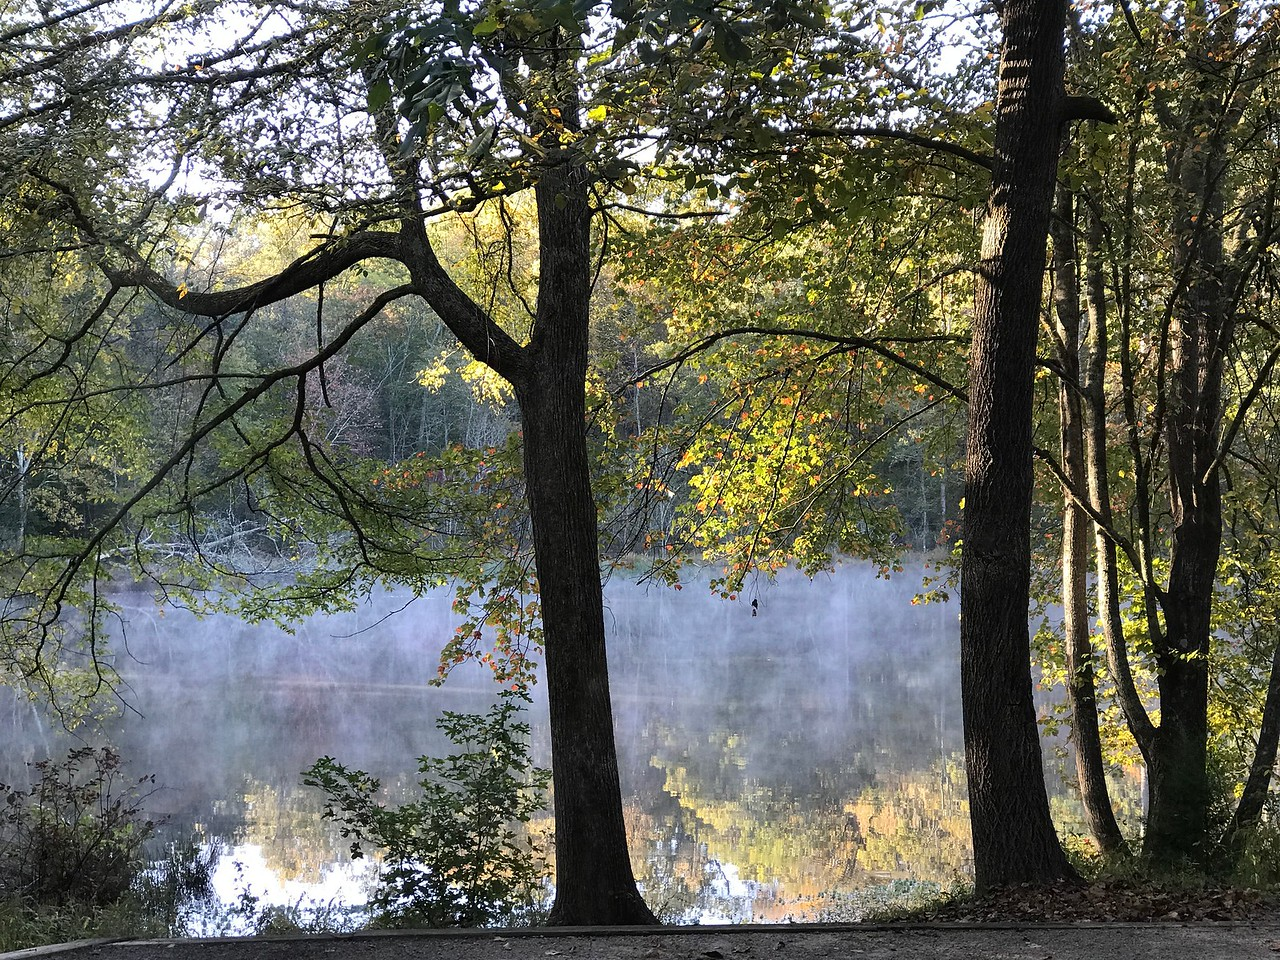 Early morning fog & reflections from our camper window.  Sweet.  Kings Mt SP, Blacksburg, SC